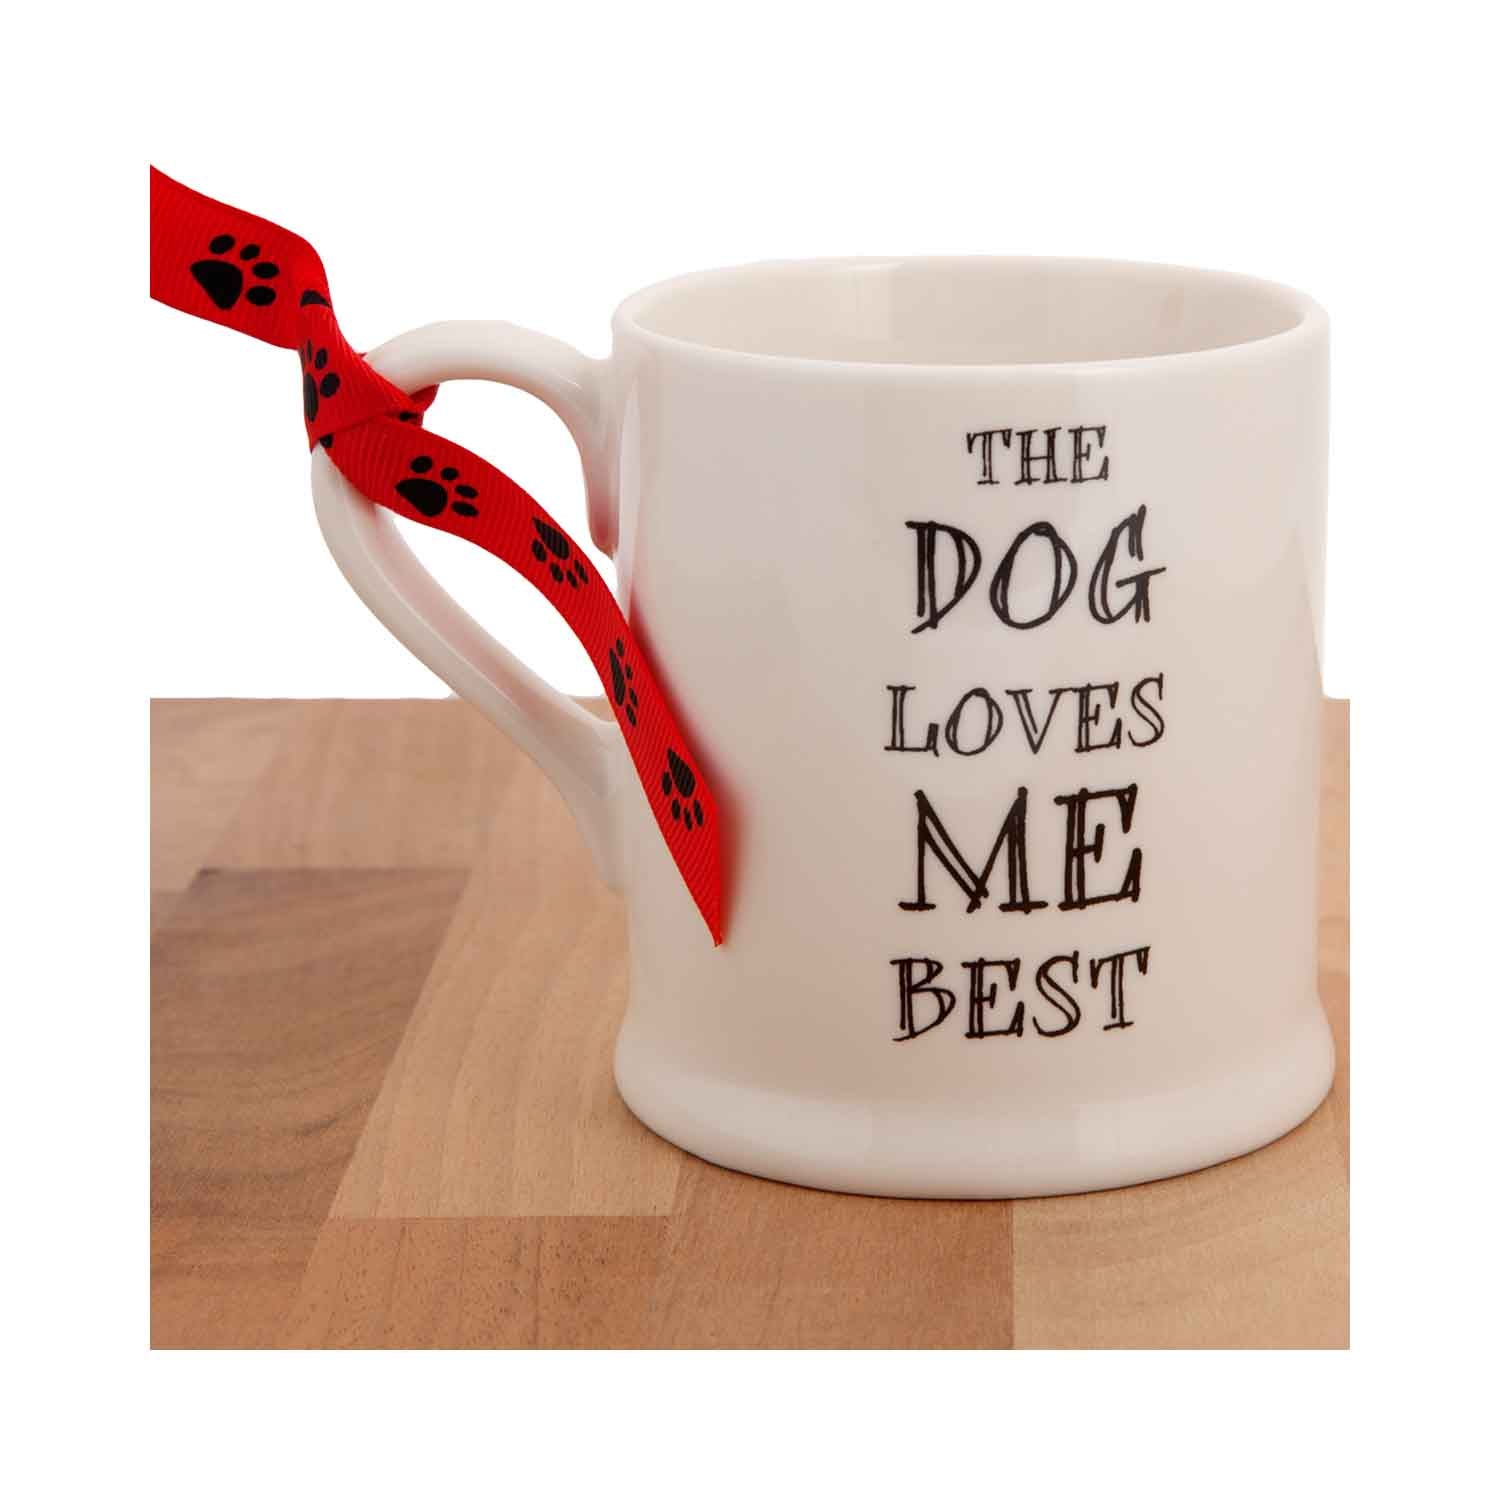 Dog Krazy Gifts - The Dog Loves Me Best Mug part of the Sweet William range available from DogKrazyGifts.co.uk